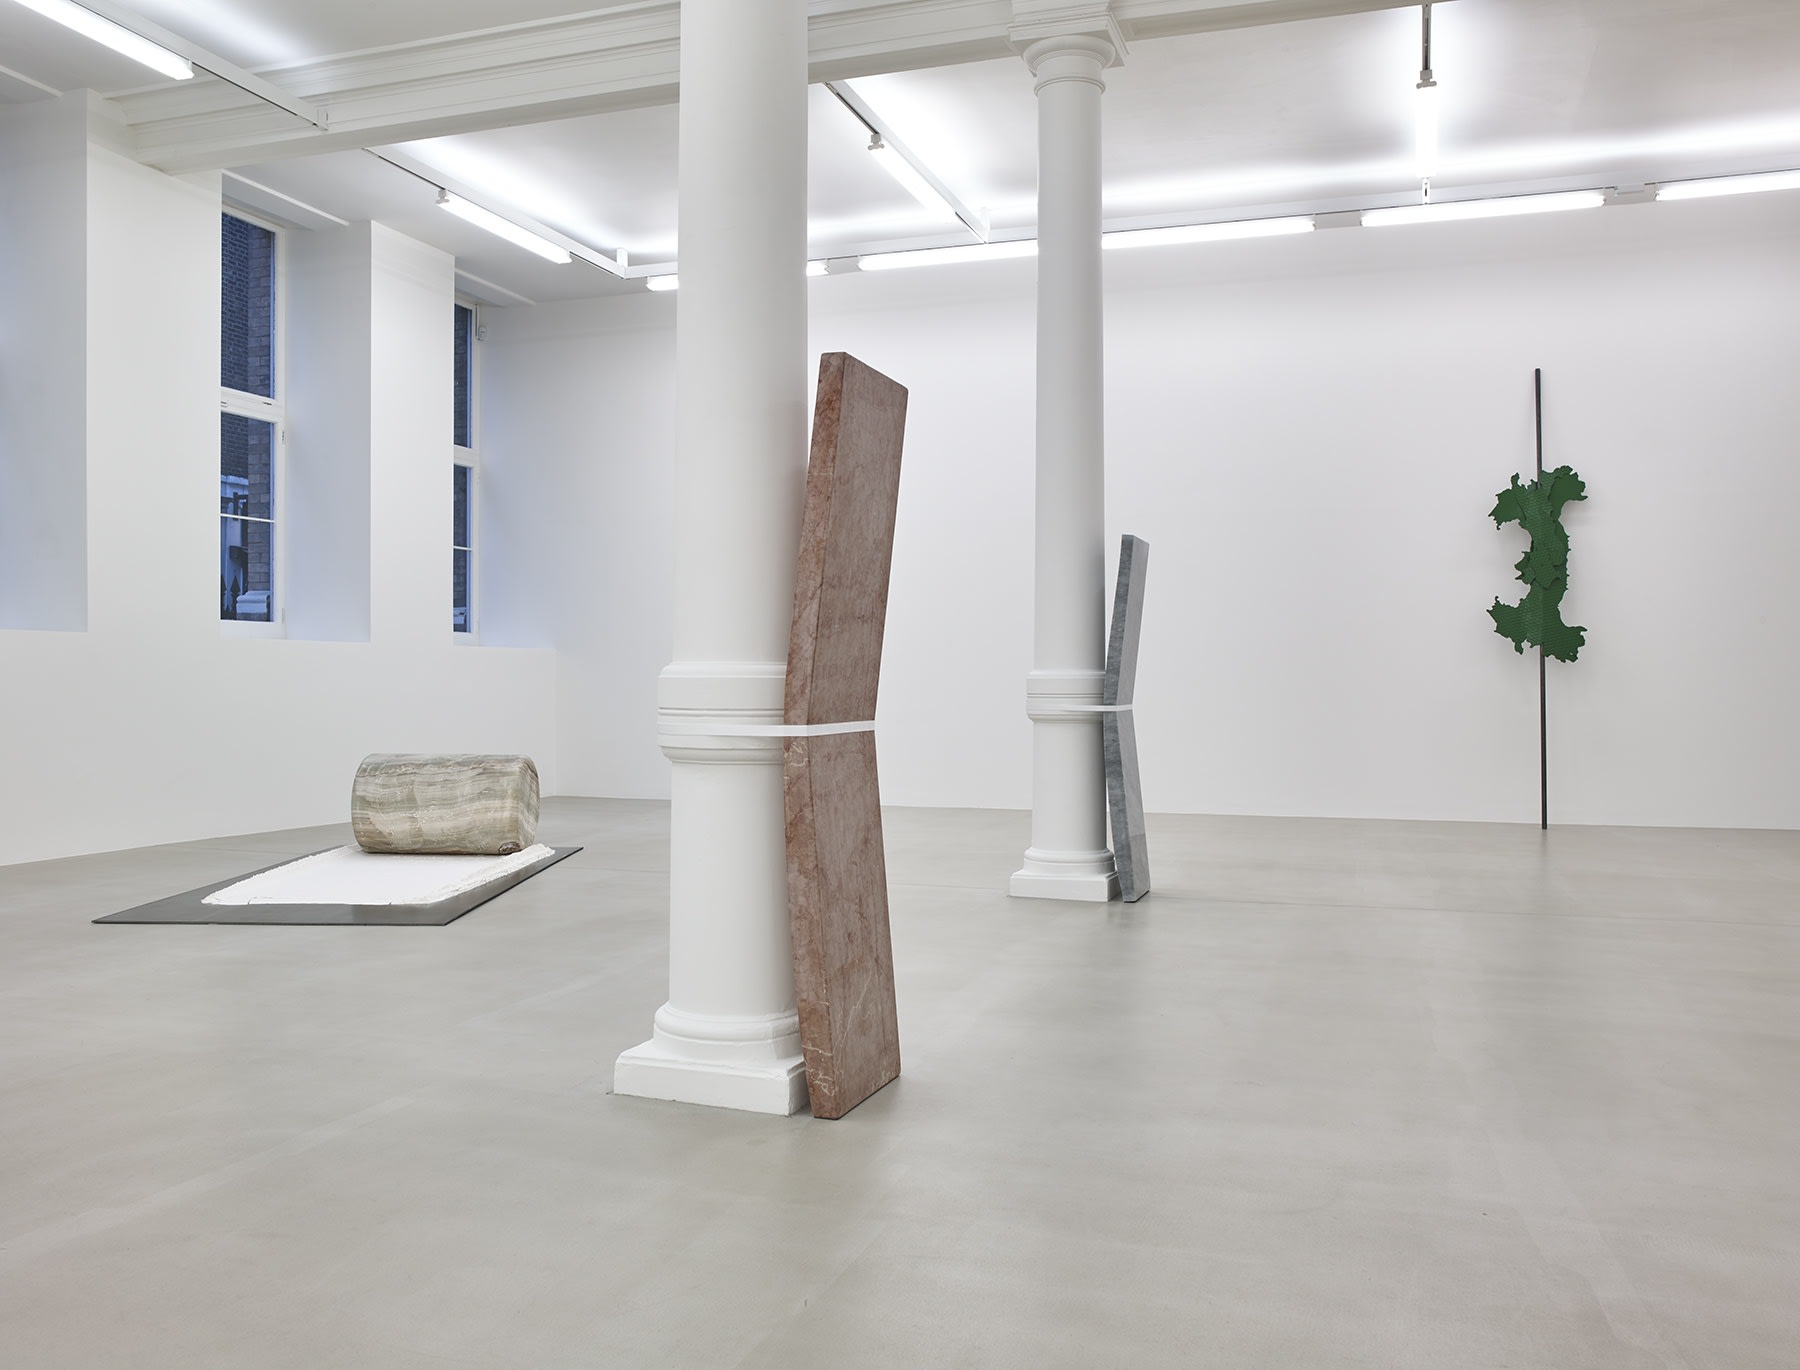 Installation view, slabs of stone strapped to pillars in a row and a cylinder stone on pallet.